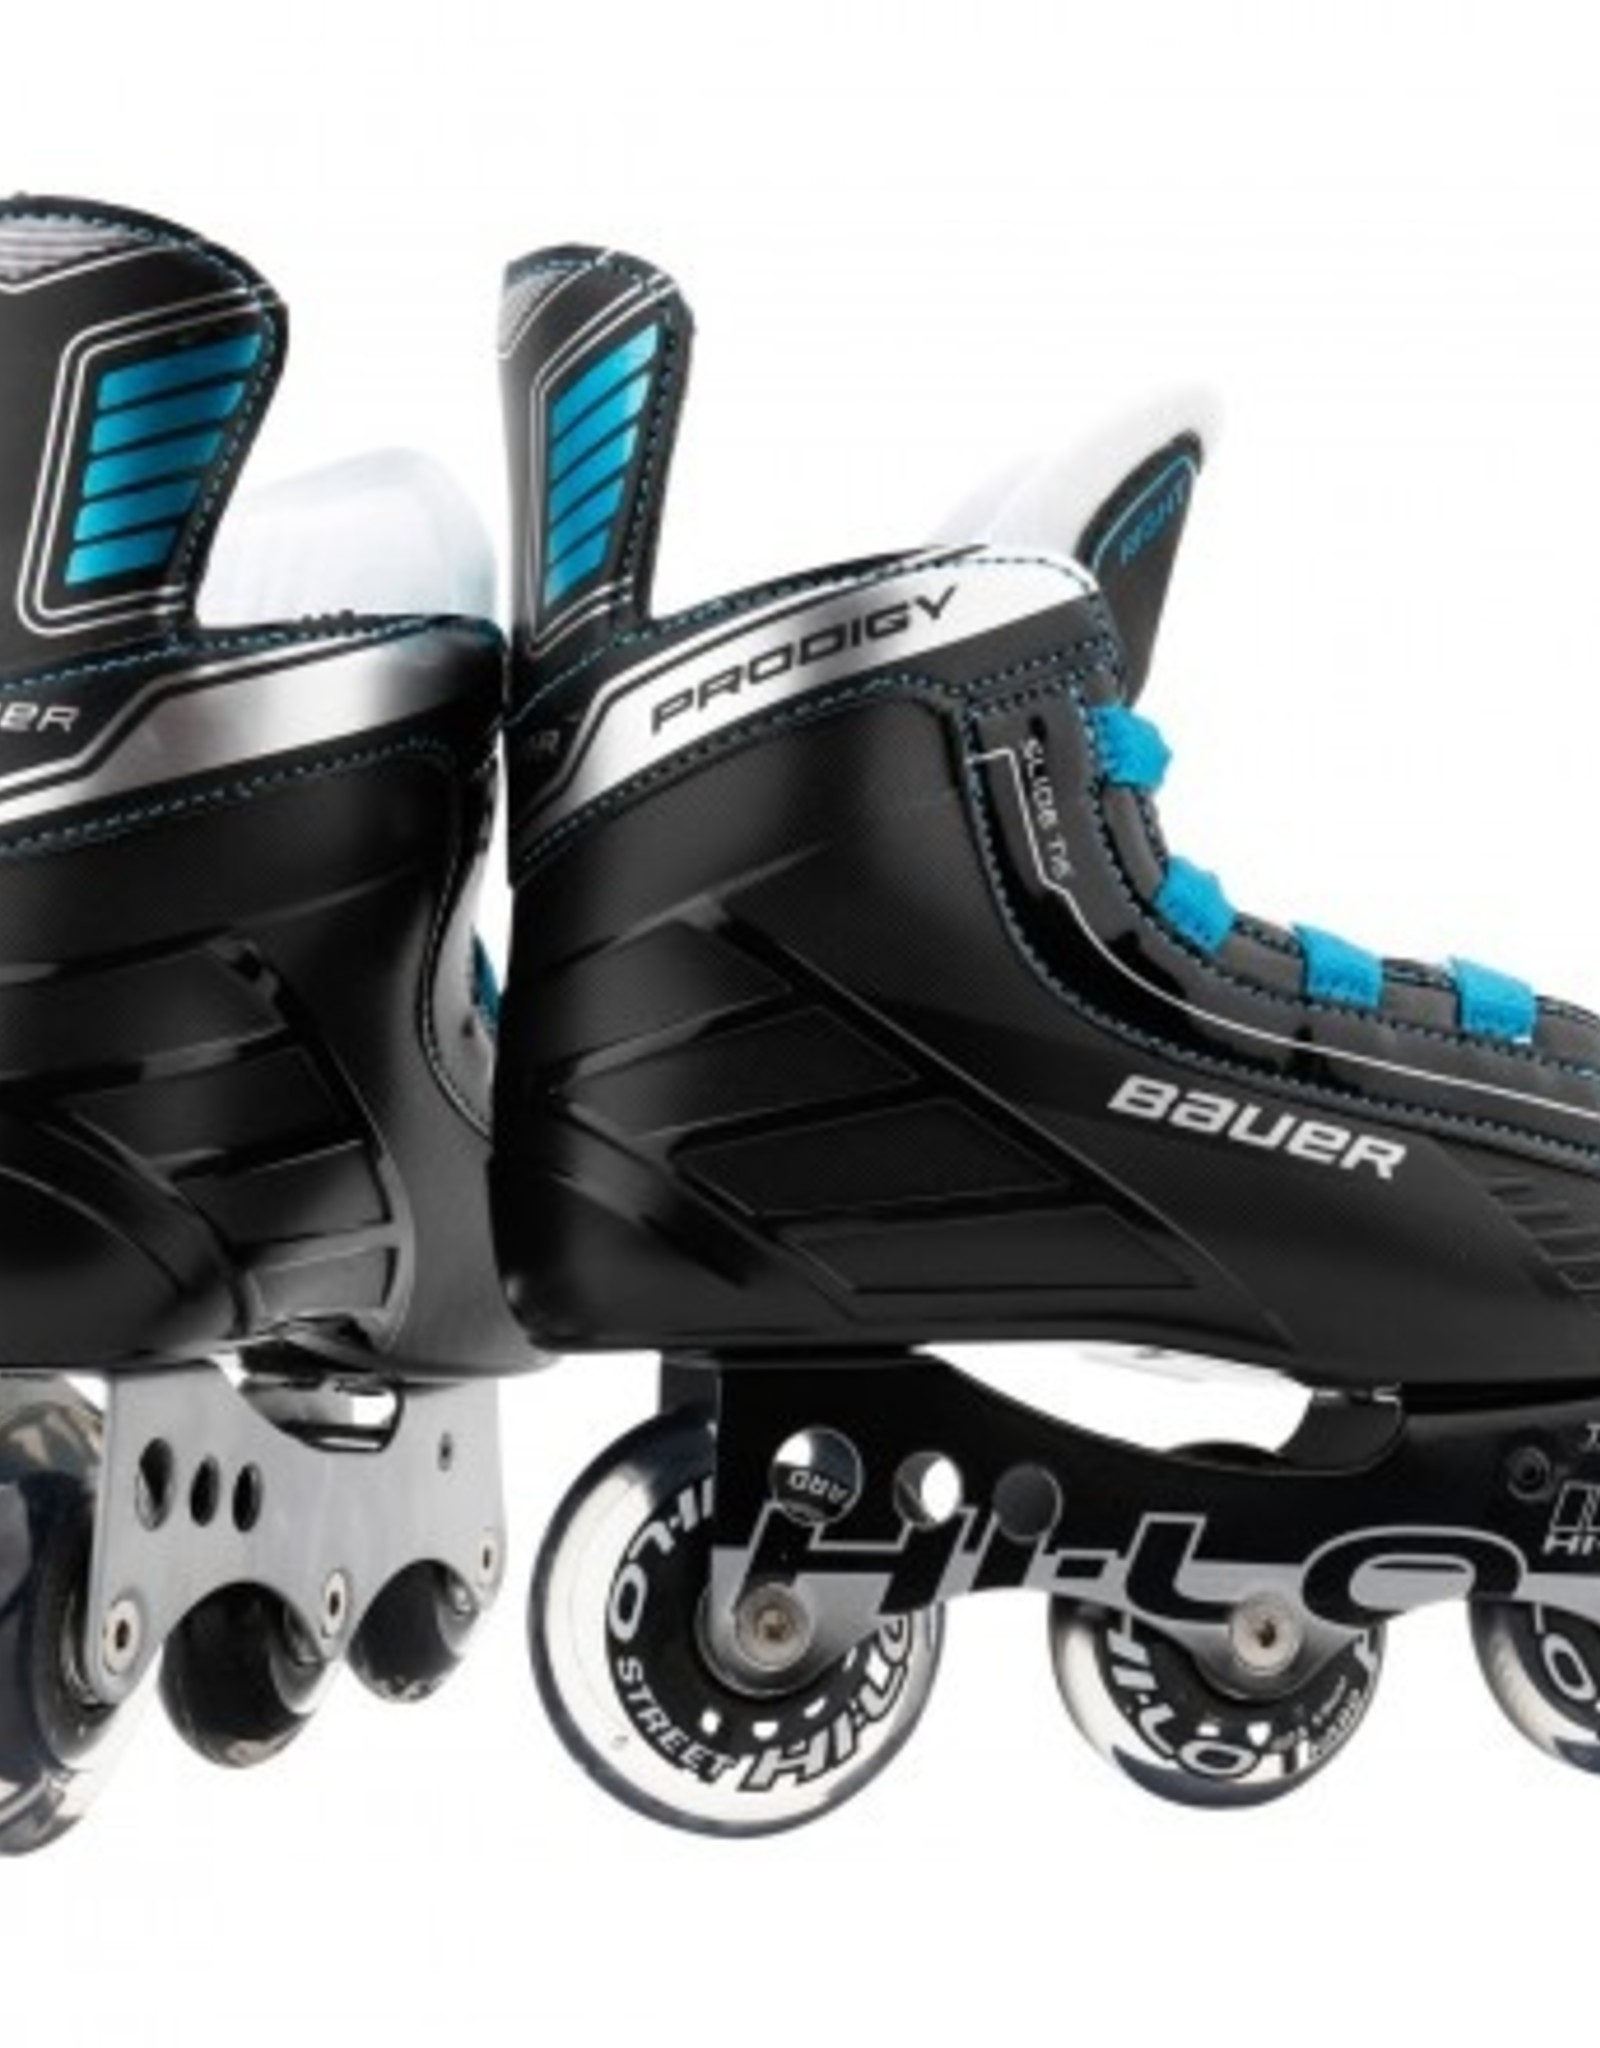 Bauer Prodigy roller skate Yht